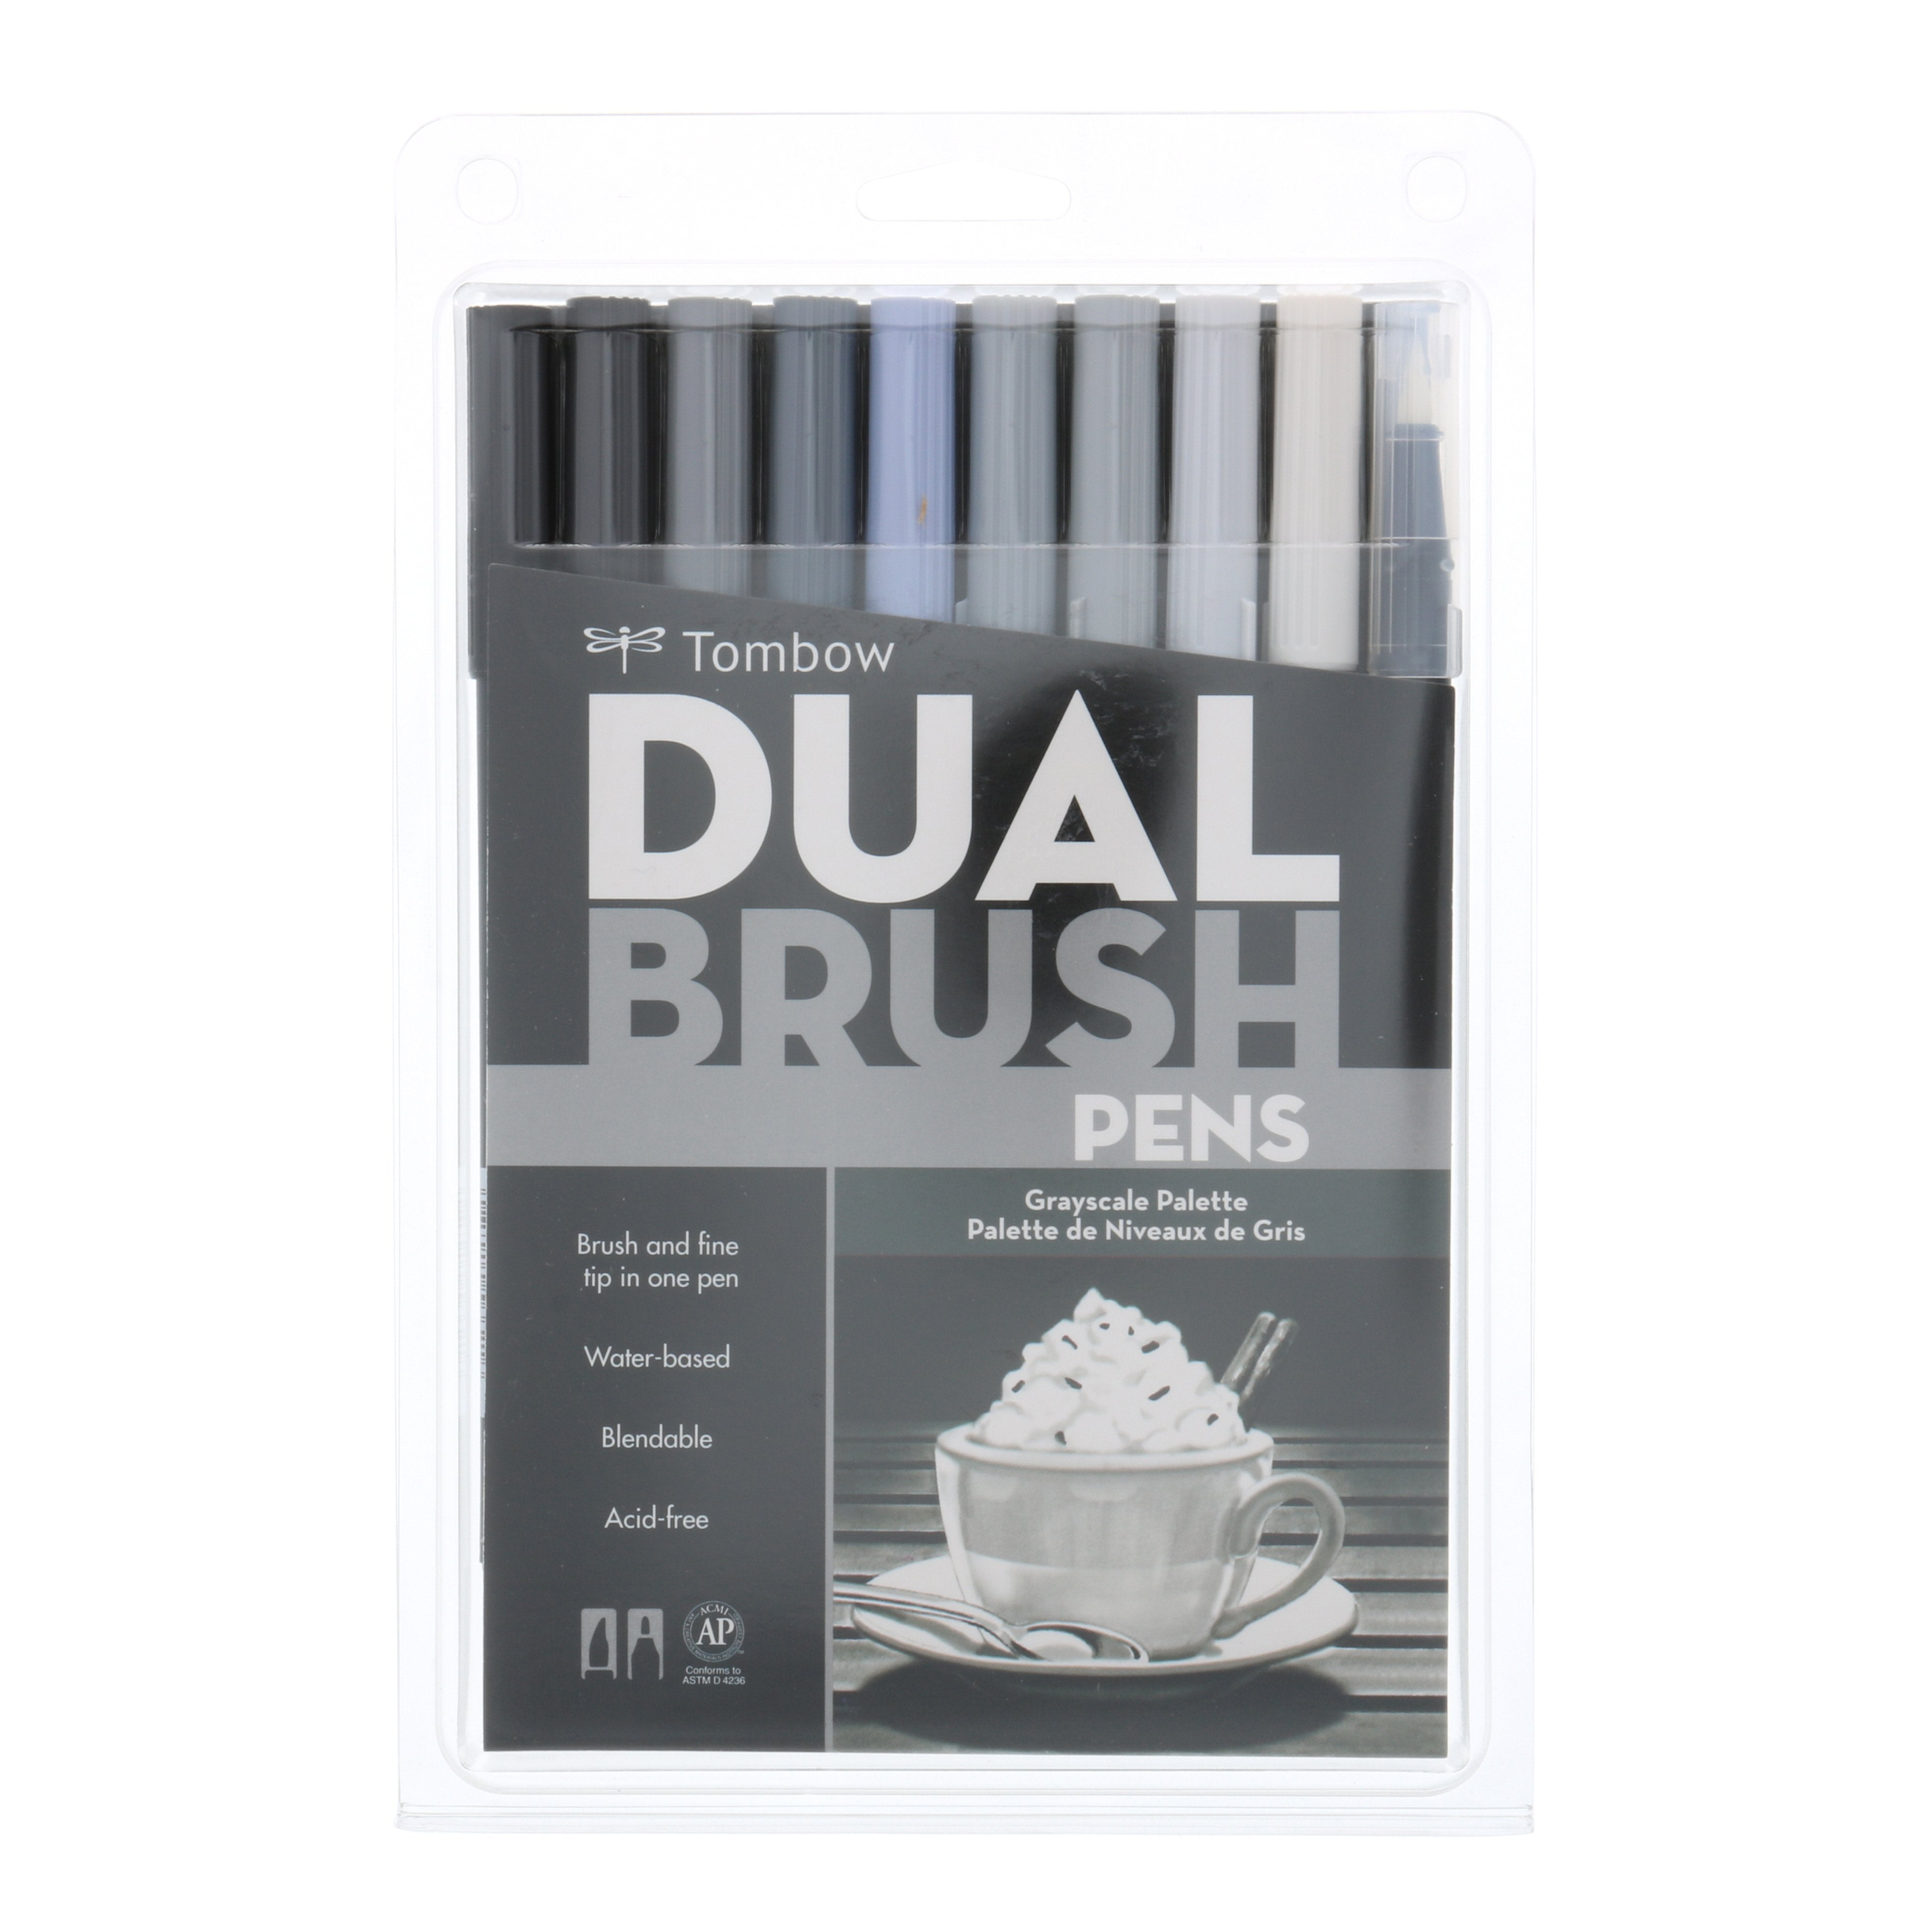 Tombow Dual Brush Pen, 10-Pen Set, Grayscale